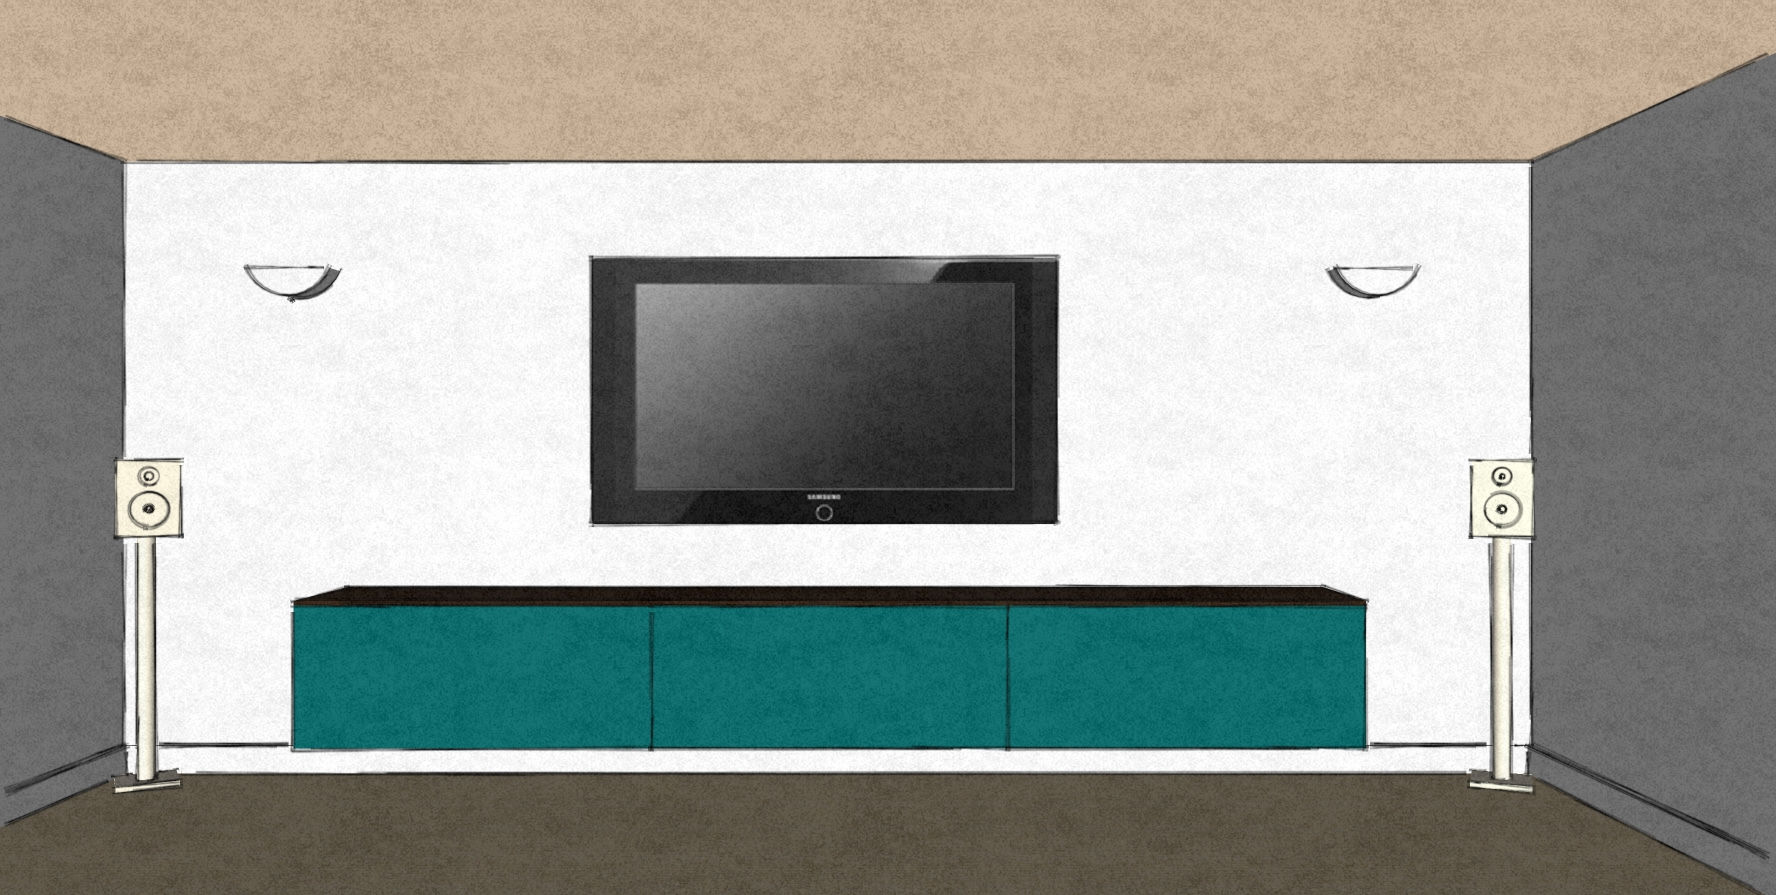 D27 simple run of drop lid media cabinets in turquoise matt lacquer and Therm Oak.jpg